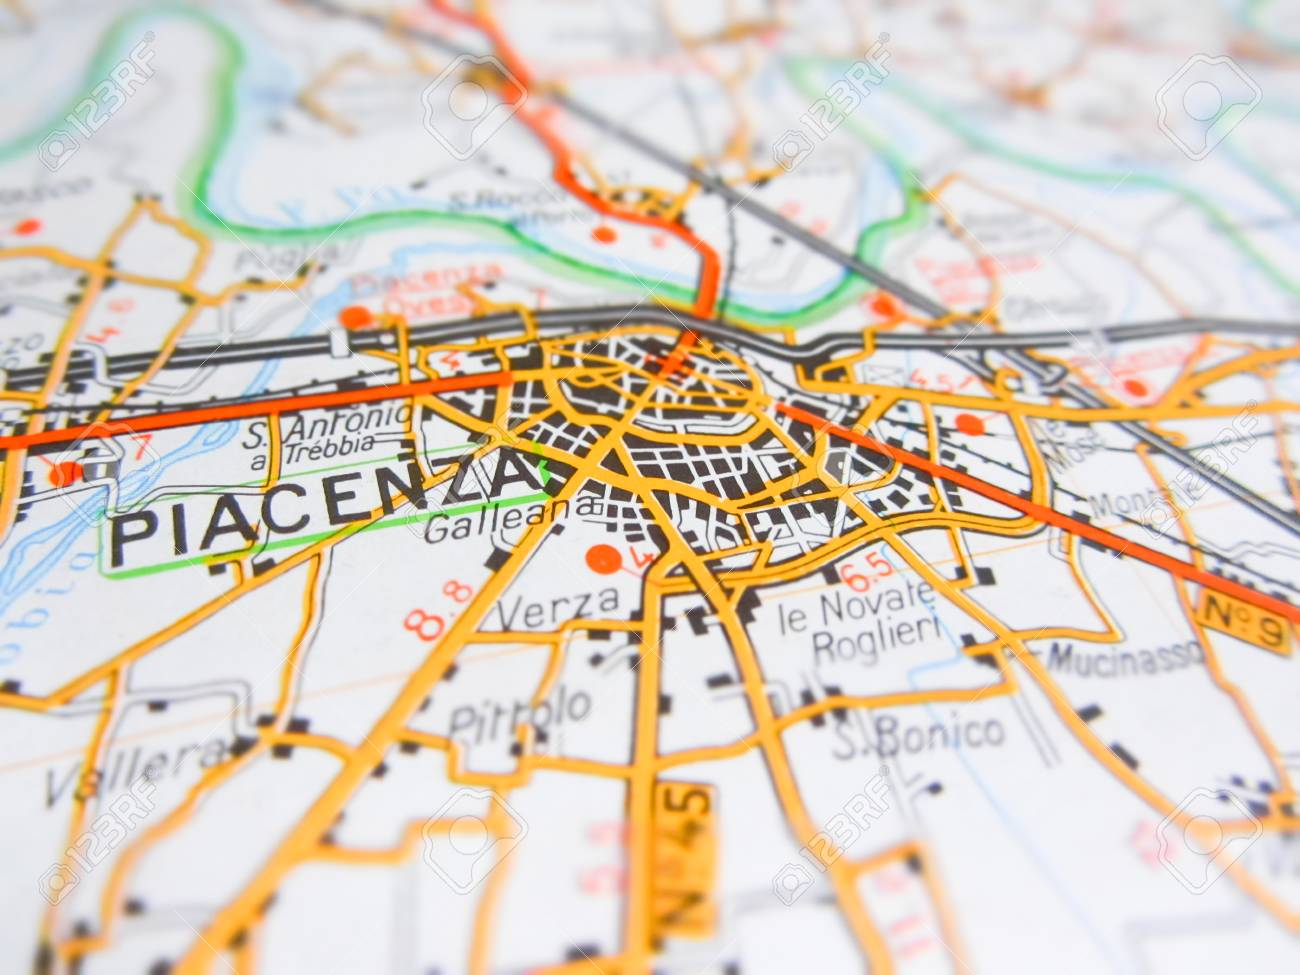 Piacenza City Over A Road Map Italy Stock Photo Picture And